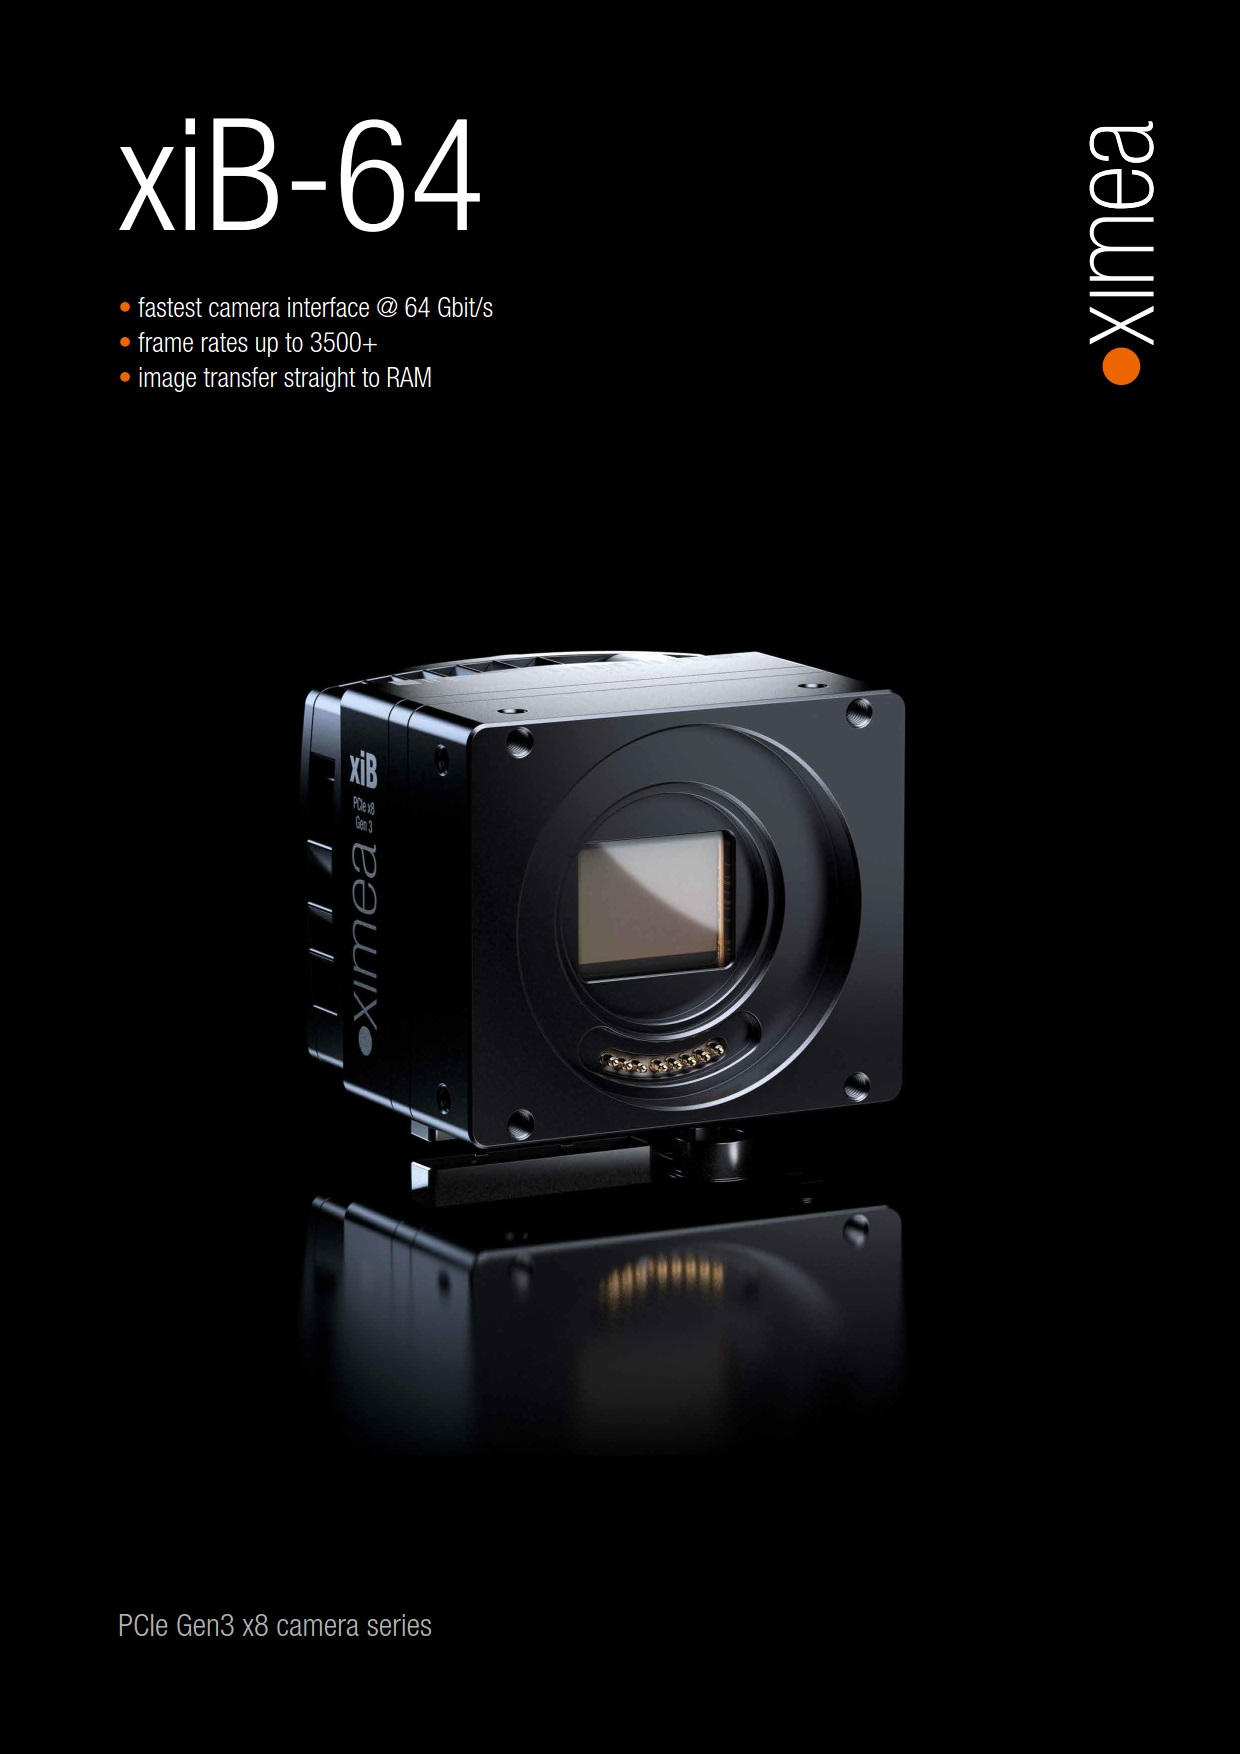 XIMEA - 3500 Fps high speed camera and other fast models are available